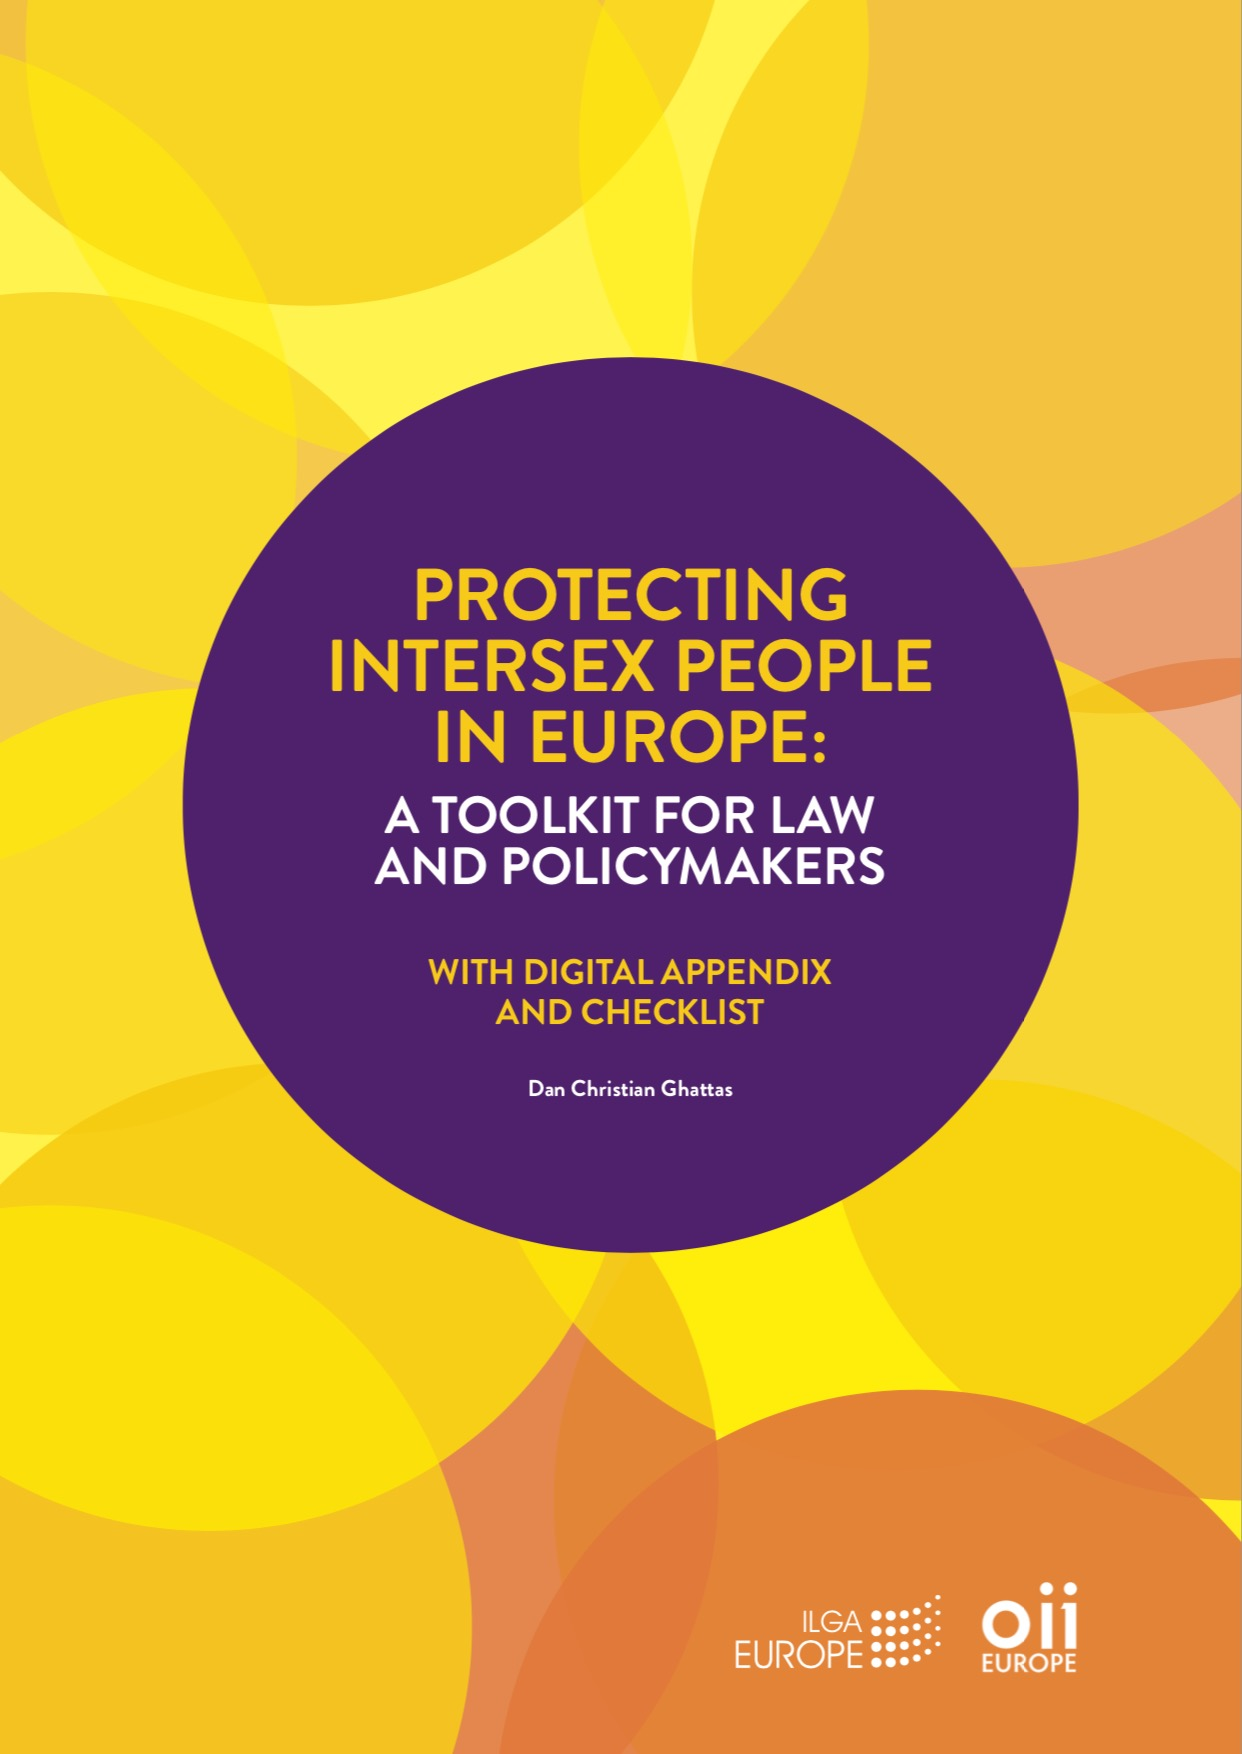 Protecting intersex people in Europe: A toolkit for law and policy makers